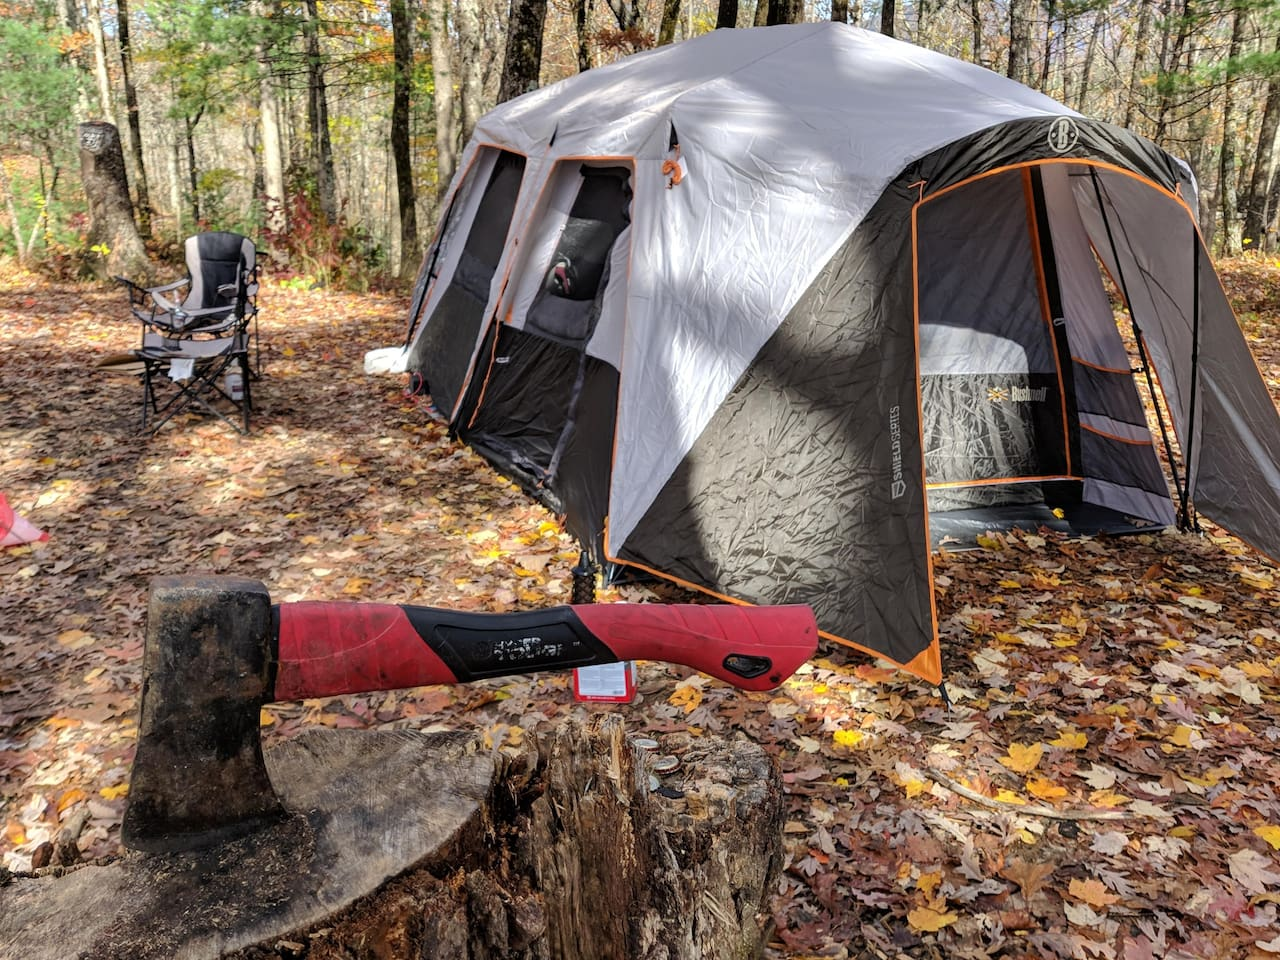 15'x9' Bushnell tent with two exterior doors and wind shield.